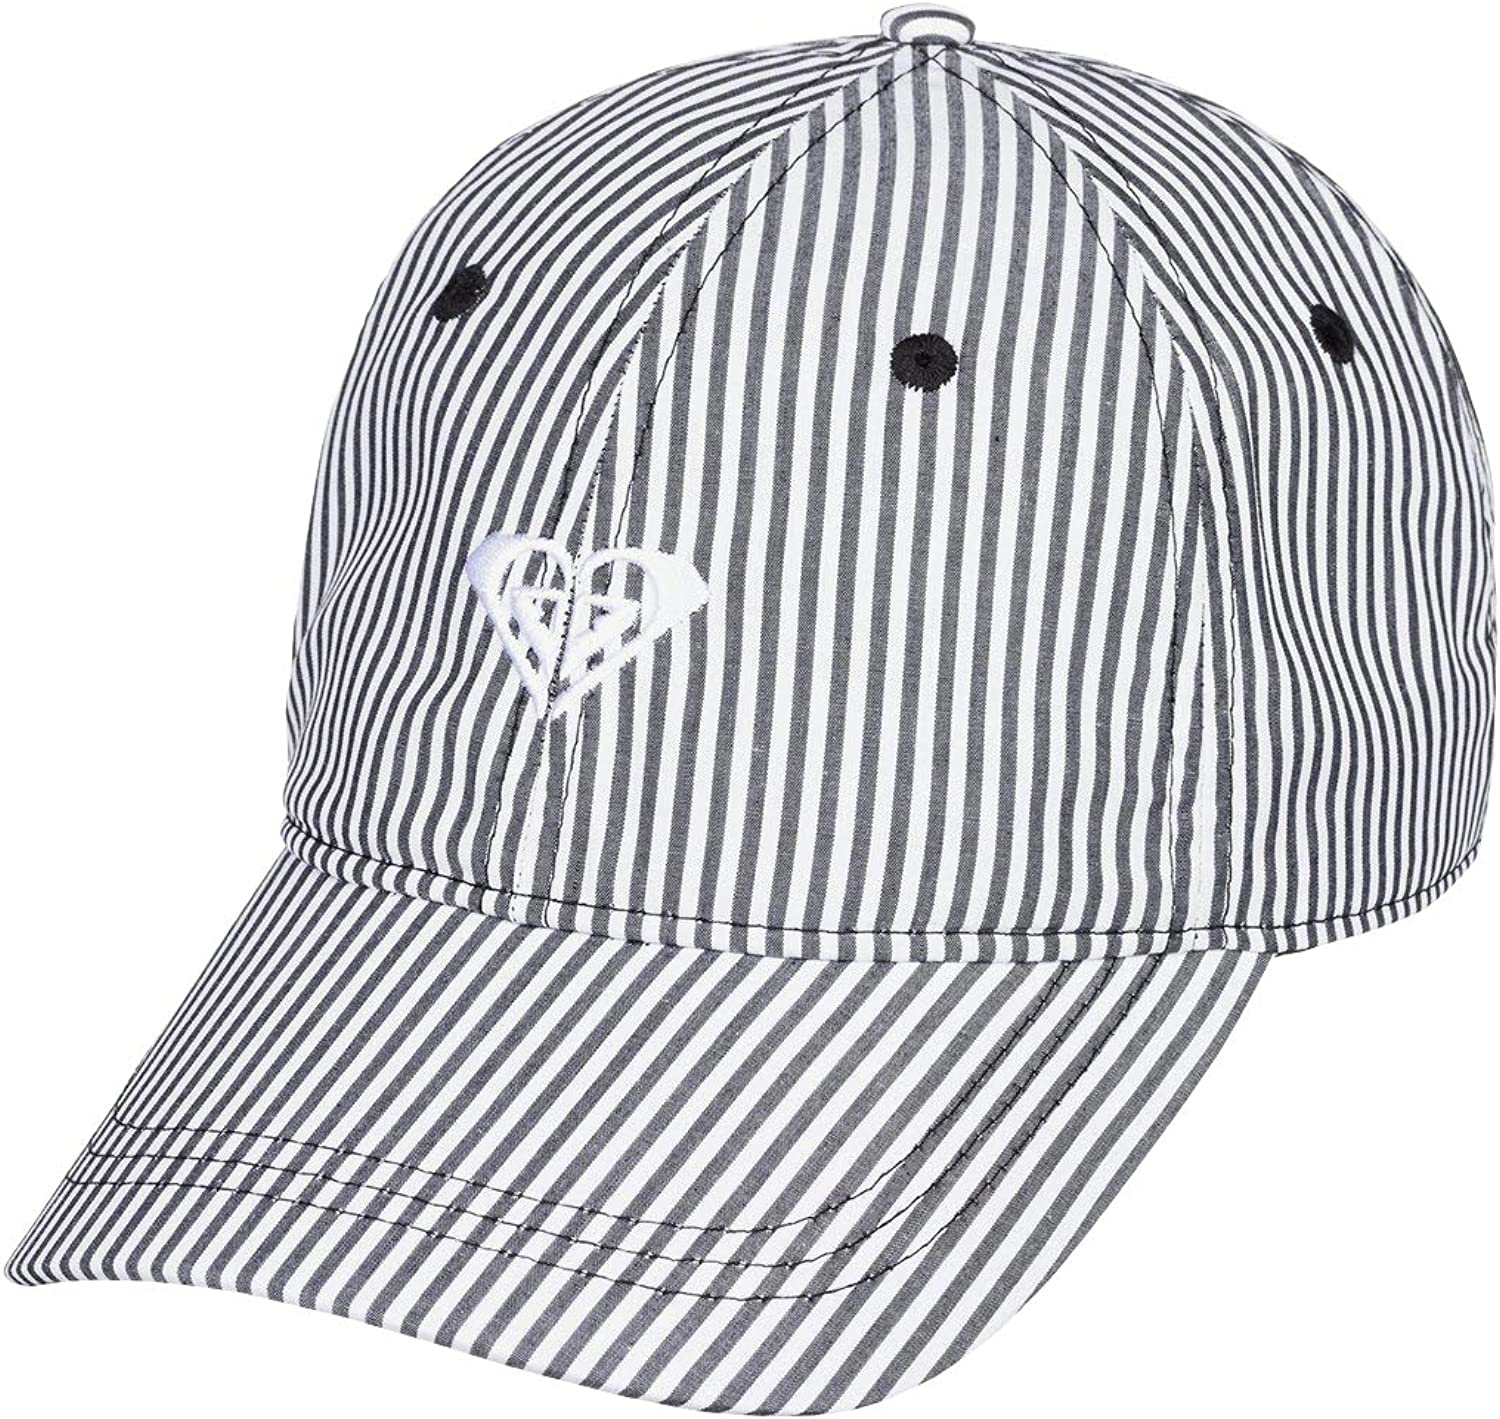 Roxy Womens Finishline Trucker Hat: Amazon.es: Ropa y accesorios